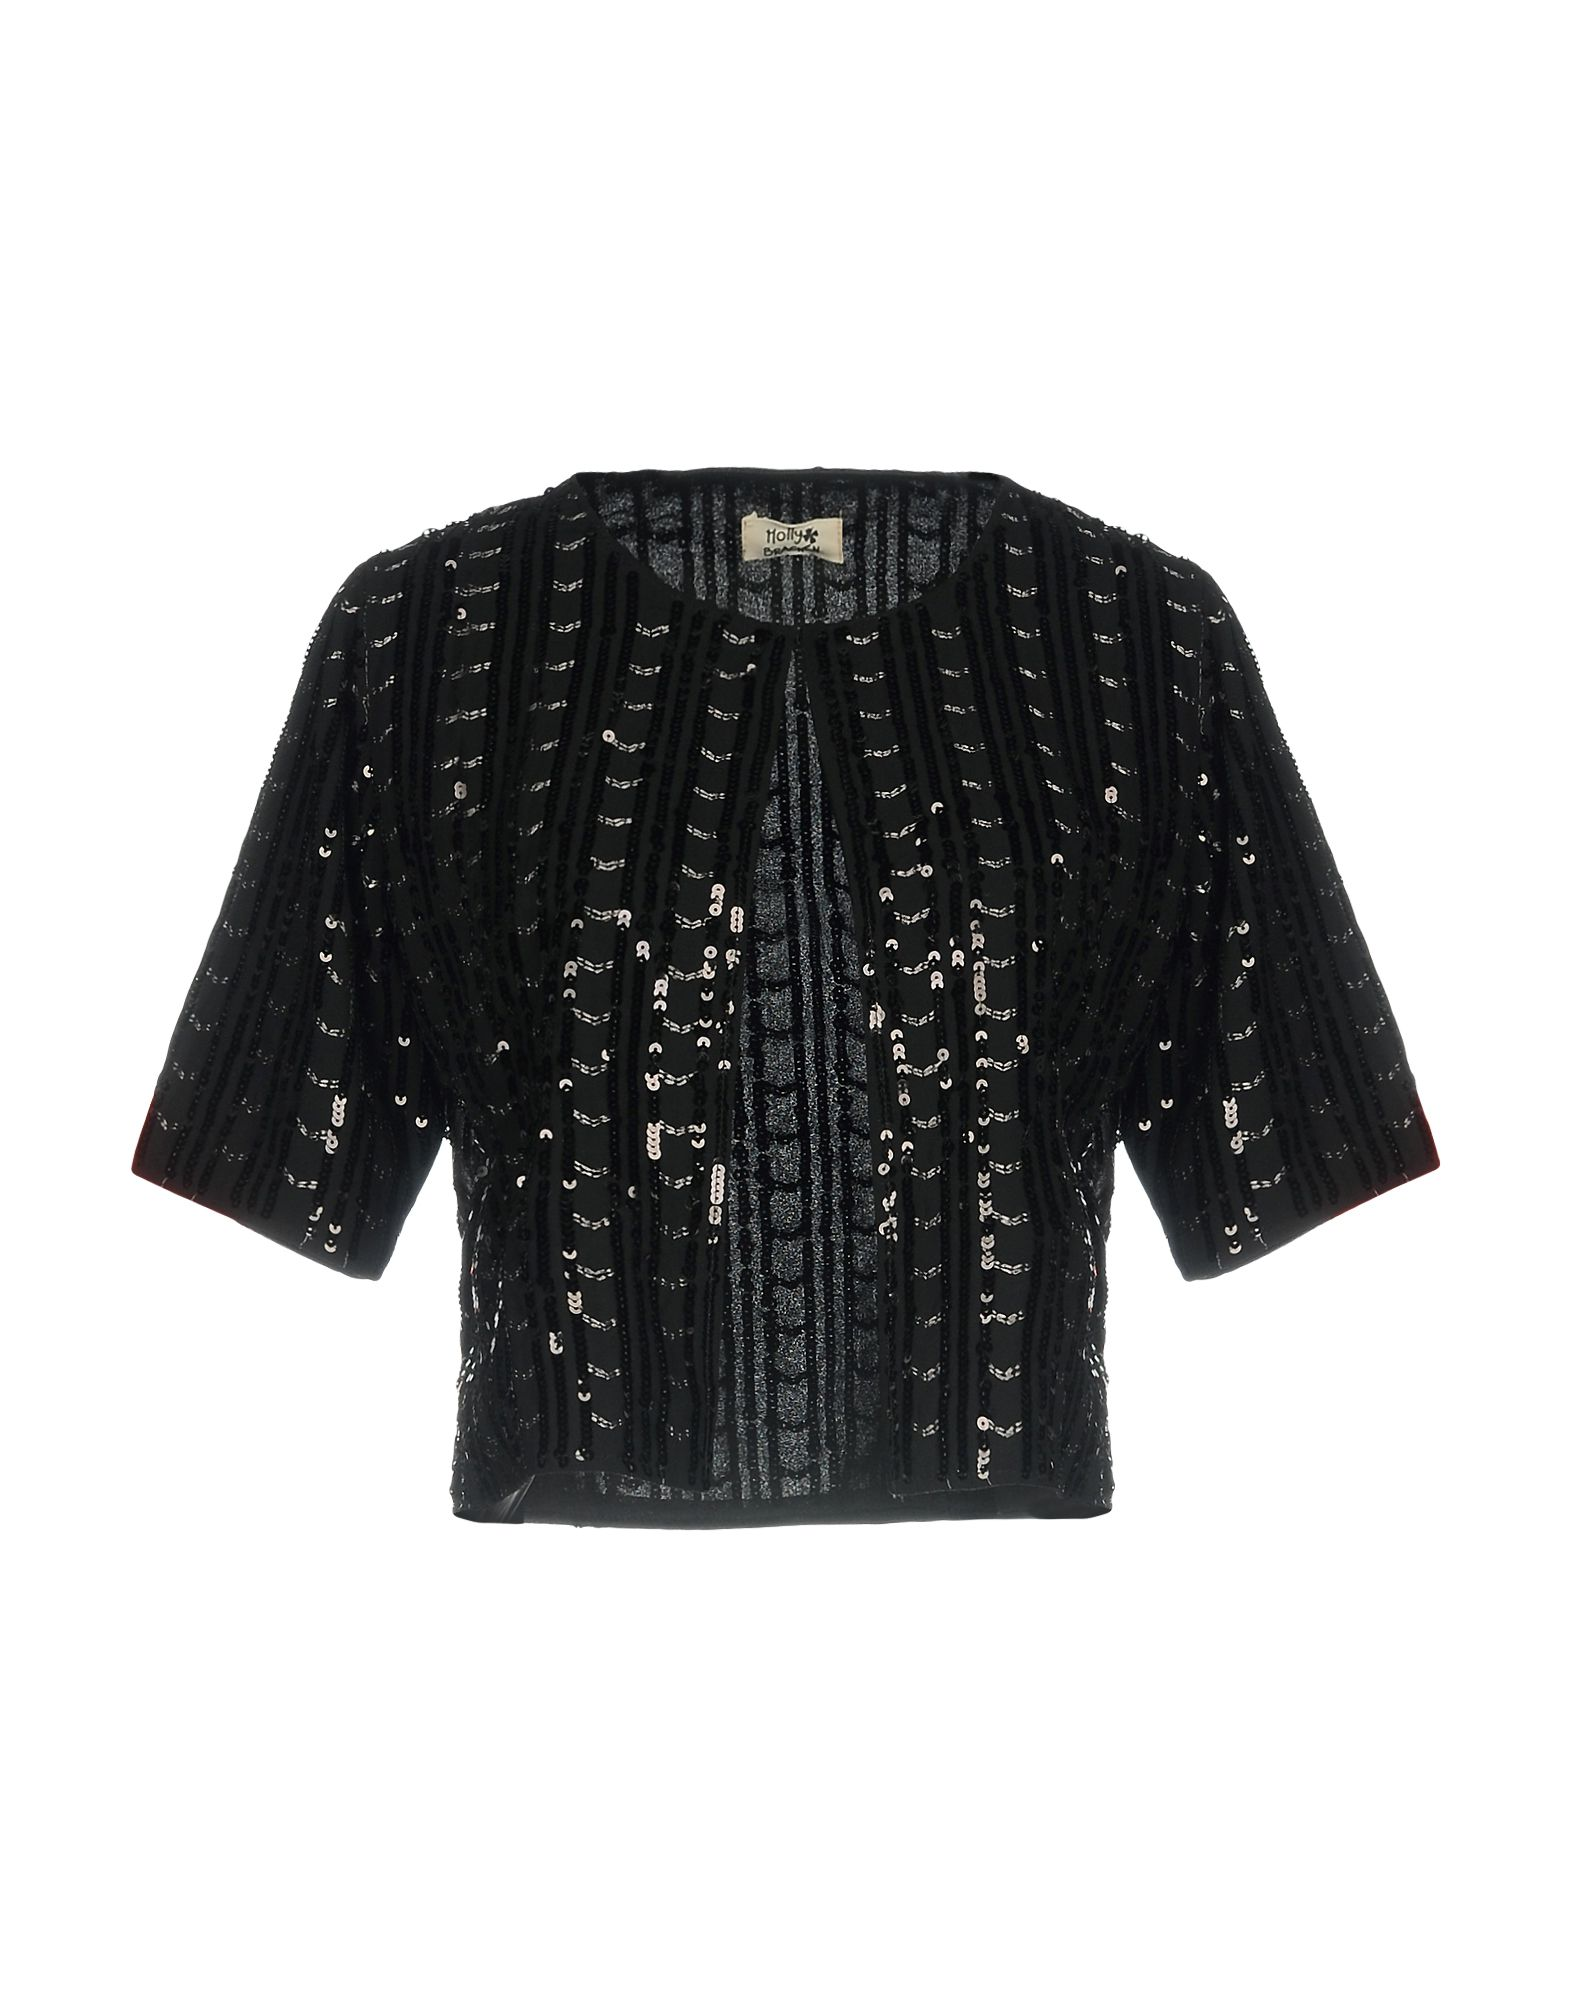 MOLLY BRACKEN Blazer in Black